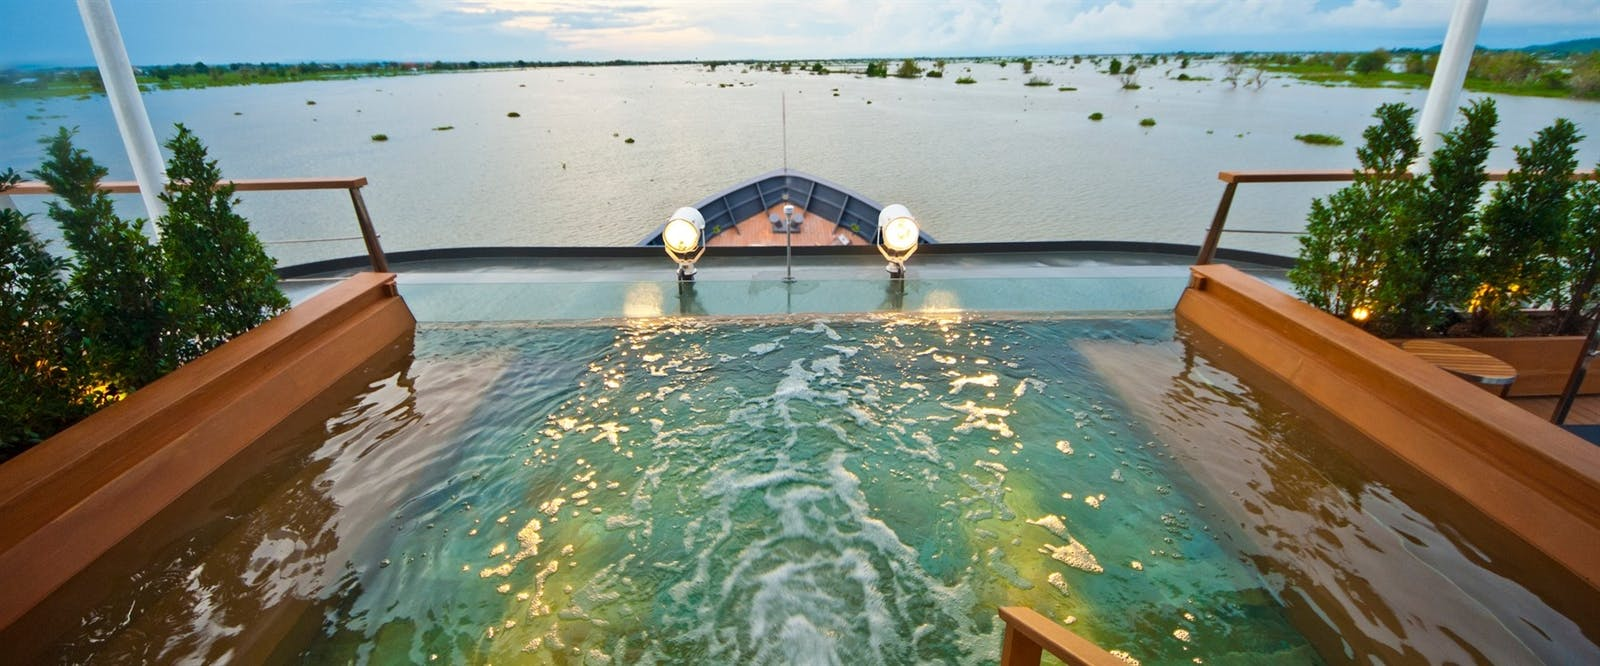 Plunge Pool at Aqua Mekong, Cambodia and Vietnam